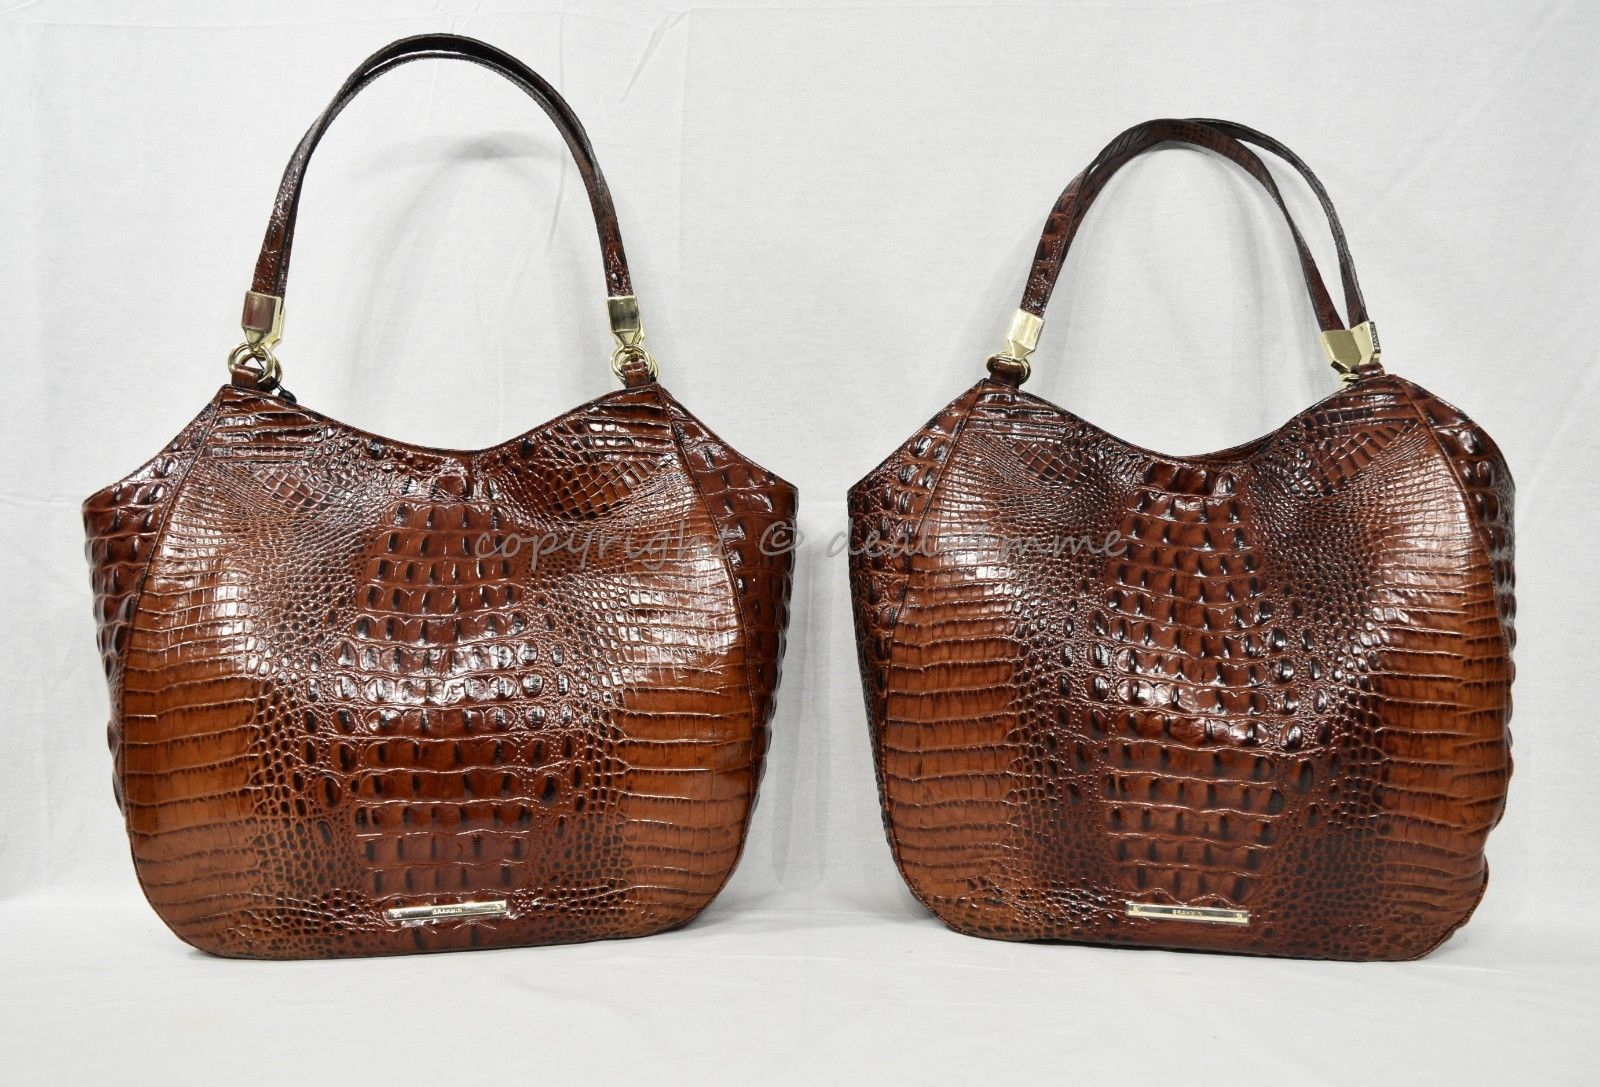 NWT Brahmin Thelma Tote / Shoulder Bag/Tote in Pecan Melbourne Embossed Leather image 9